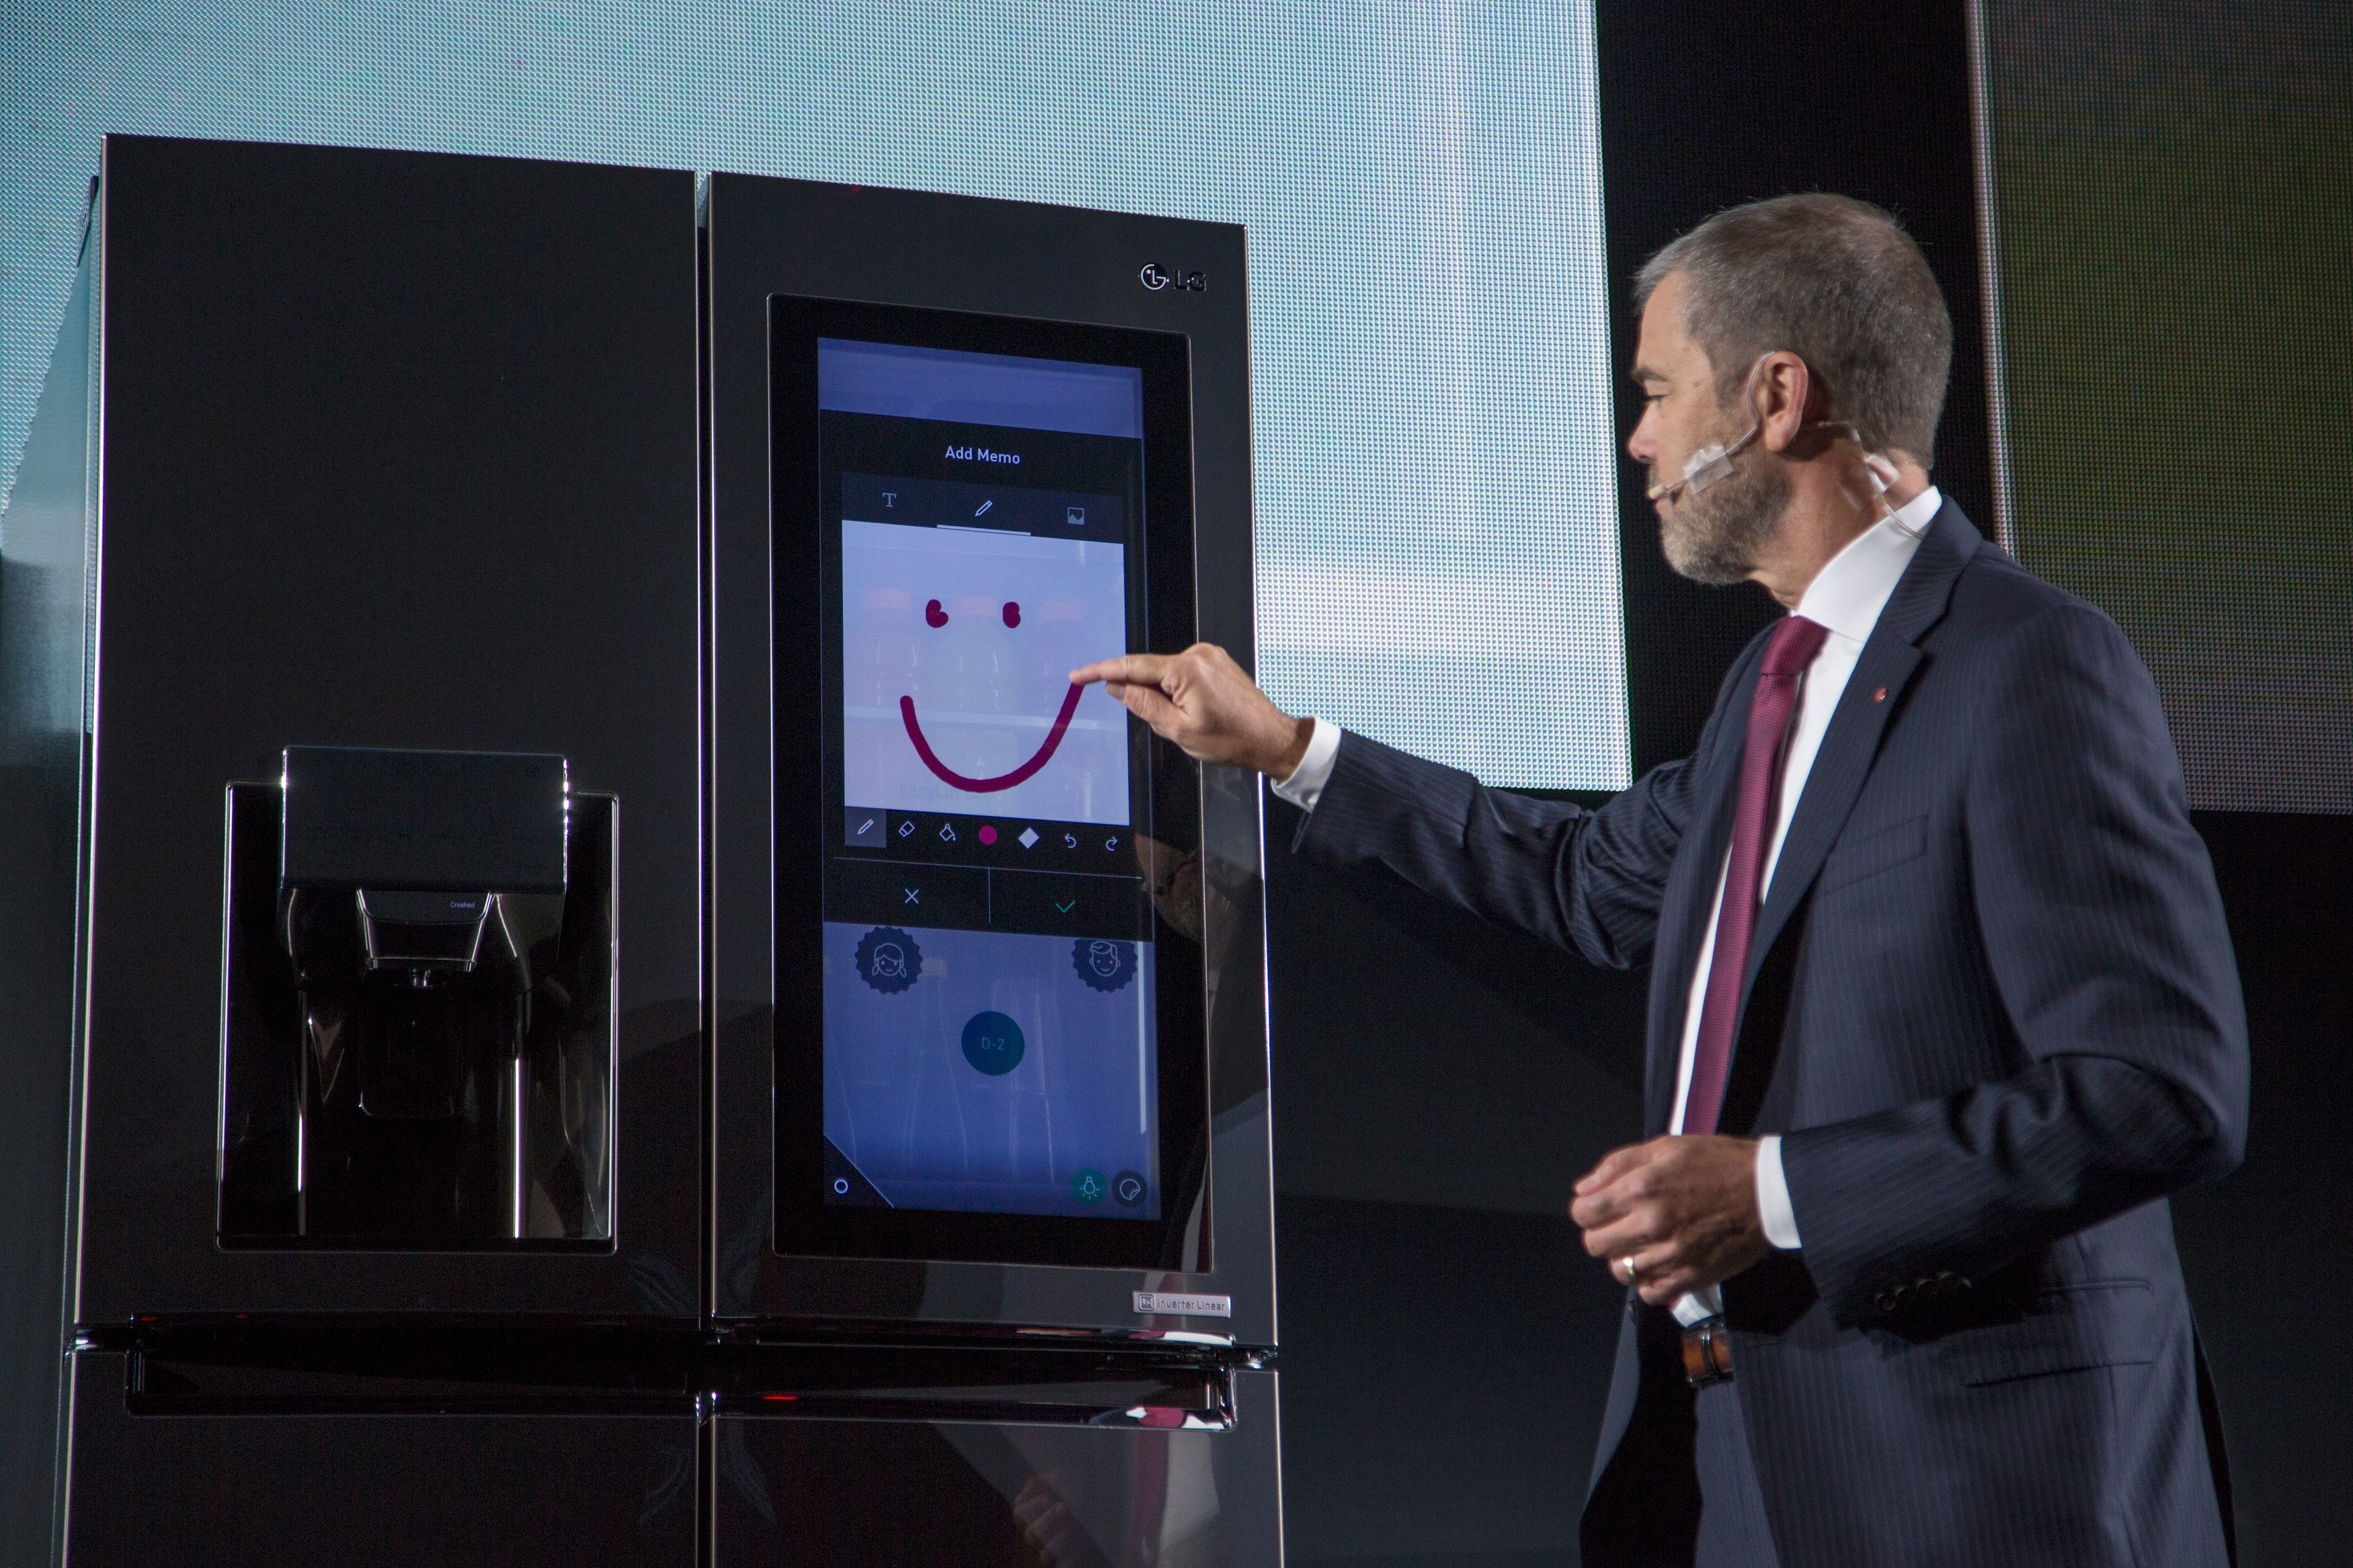 LG Electronics Vice President of Marketing David VanderWaal presenting the LG InstaView smart fridge at the 2017 Consumer Ele